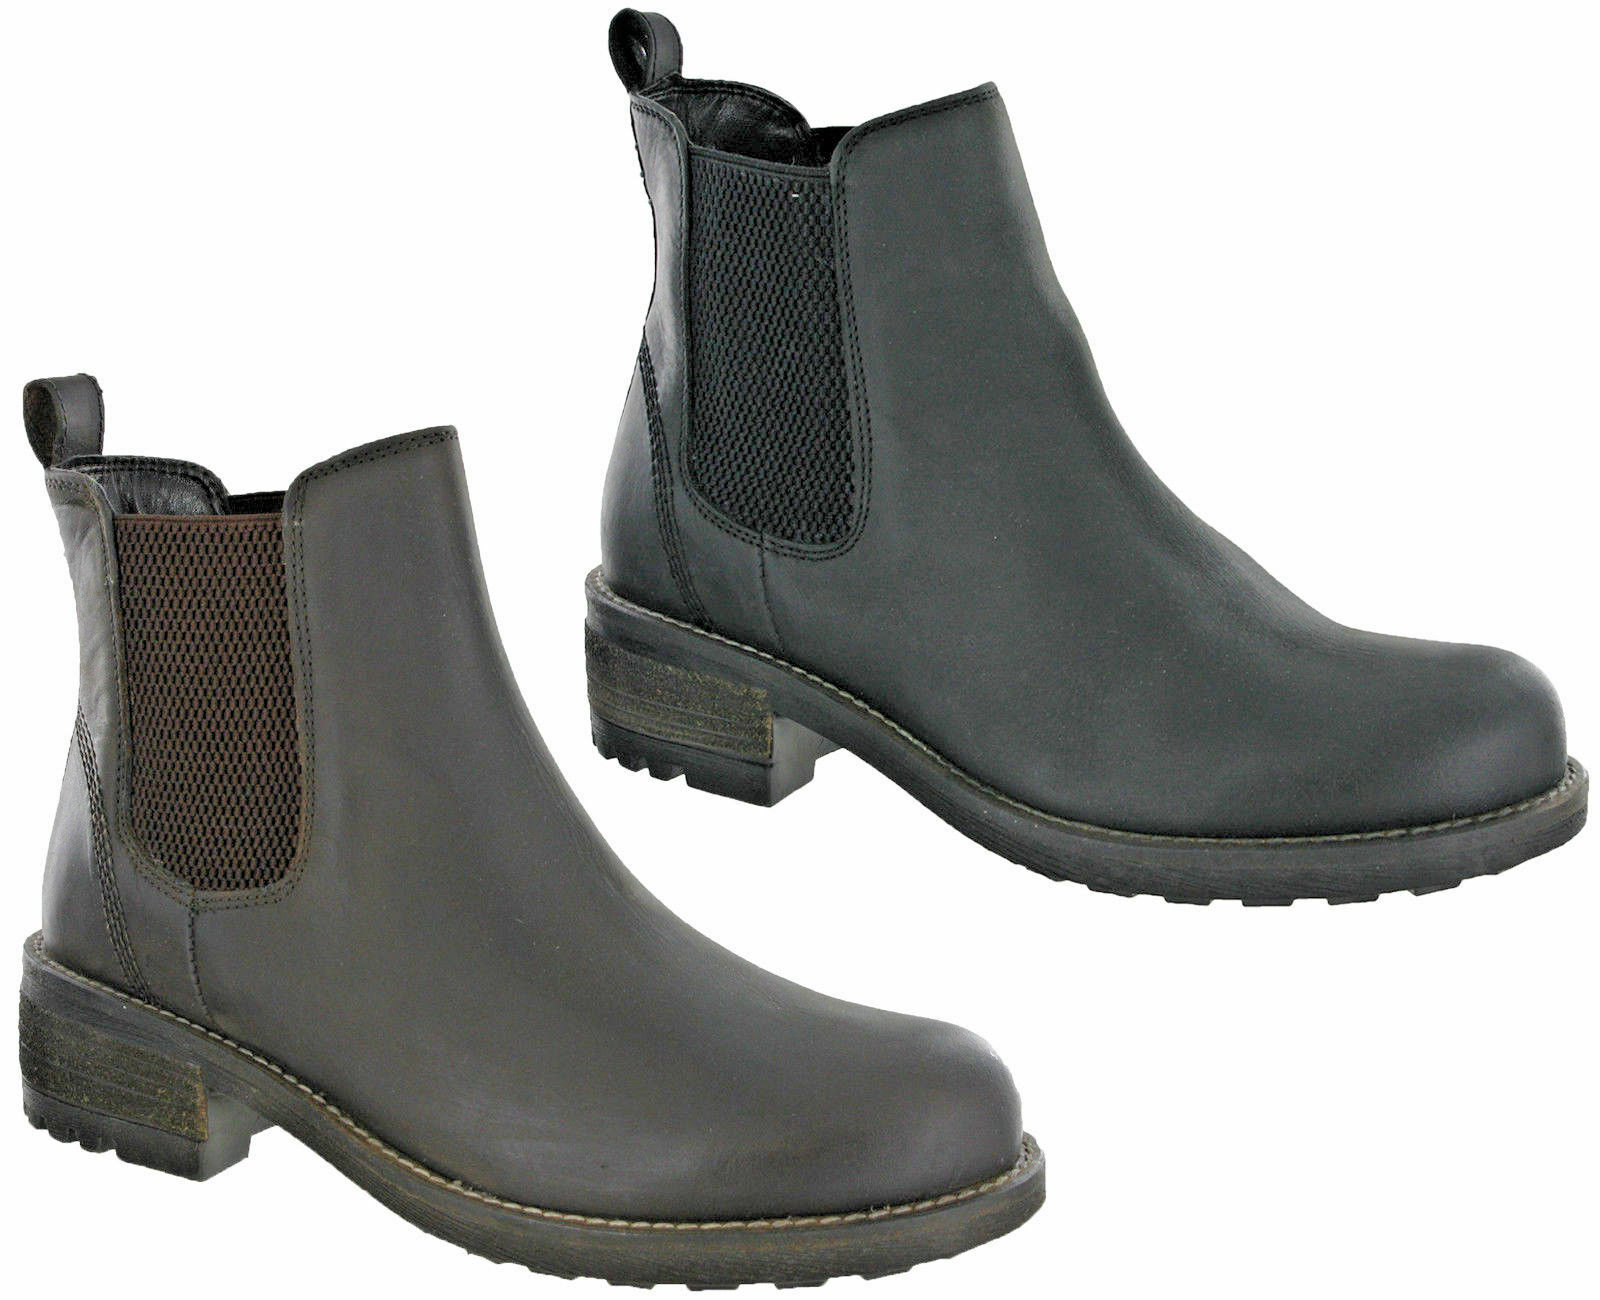 Cipriata Chelsea Leder Dealer Stiefel Twin Gusset Horse Riding Pull On Damenschuhe